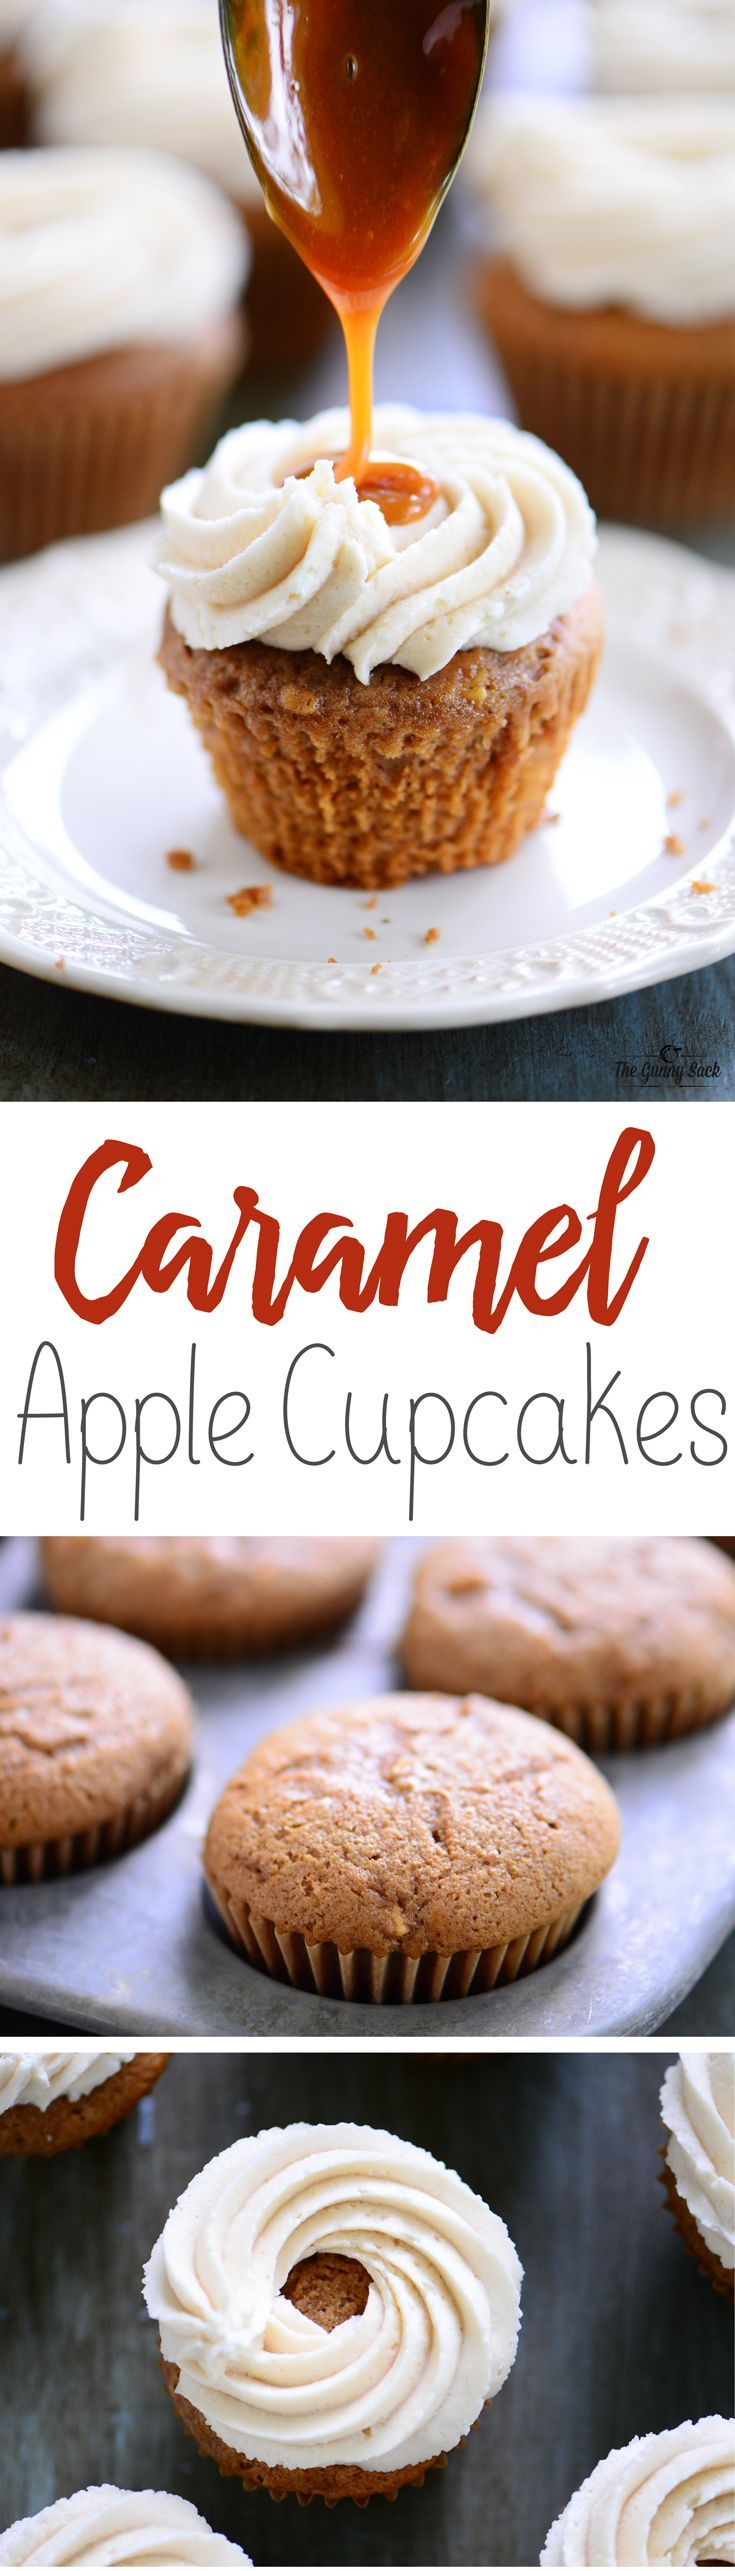 Mouthwatering Fall Dessert Recipe: Caramel Apple Cupcakes made with easy apple…